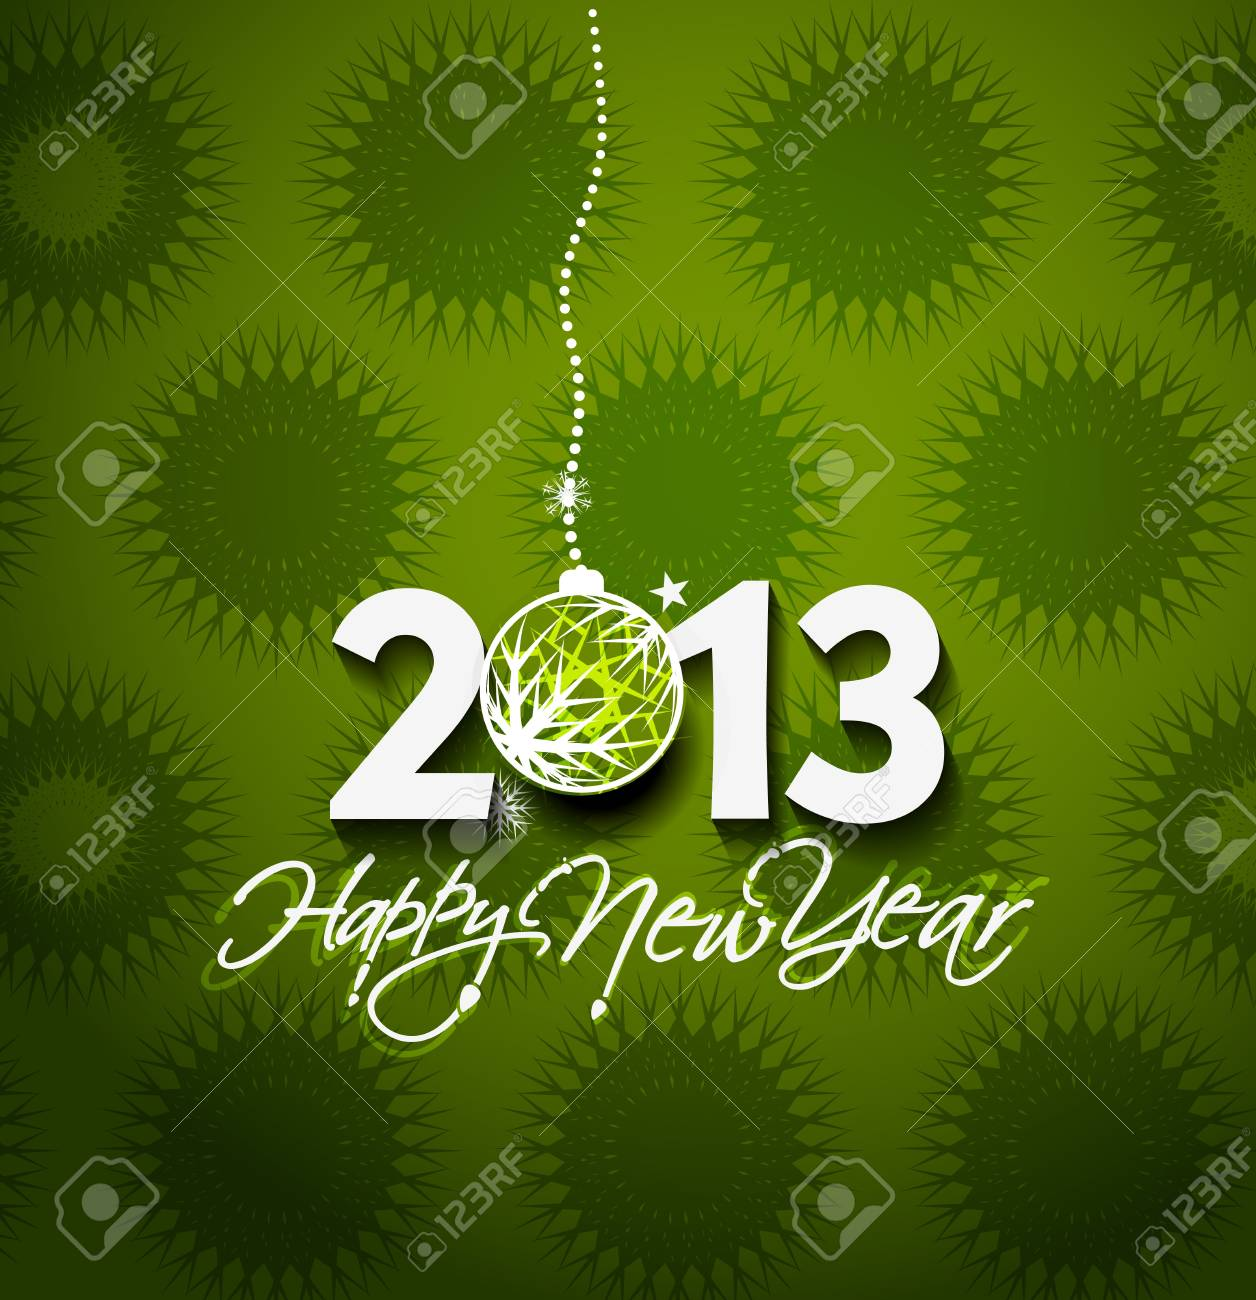 Happy new year 2013 celebration greeting card design. Stock Vector - 16818653